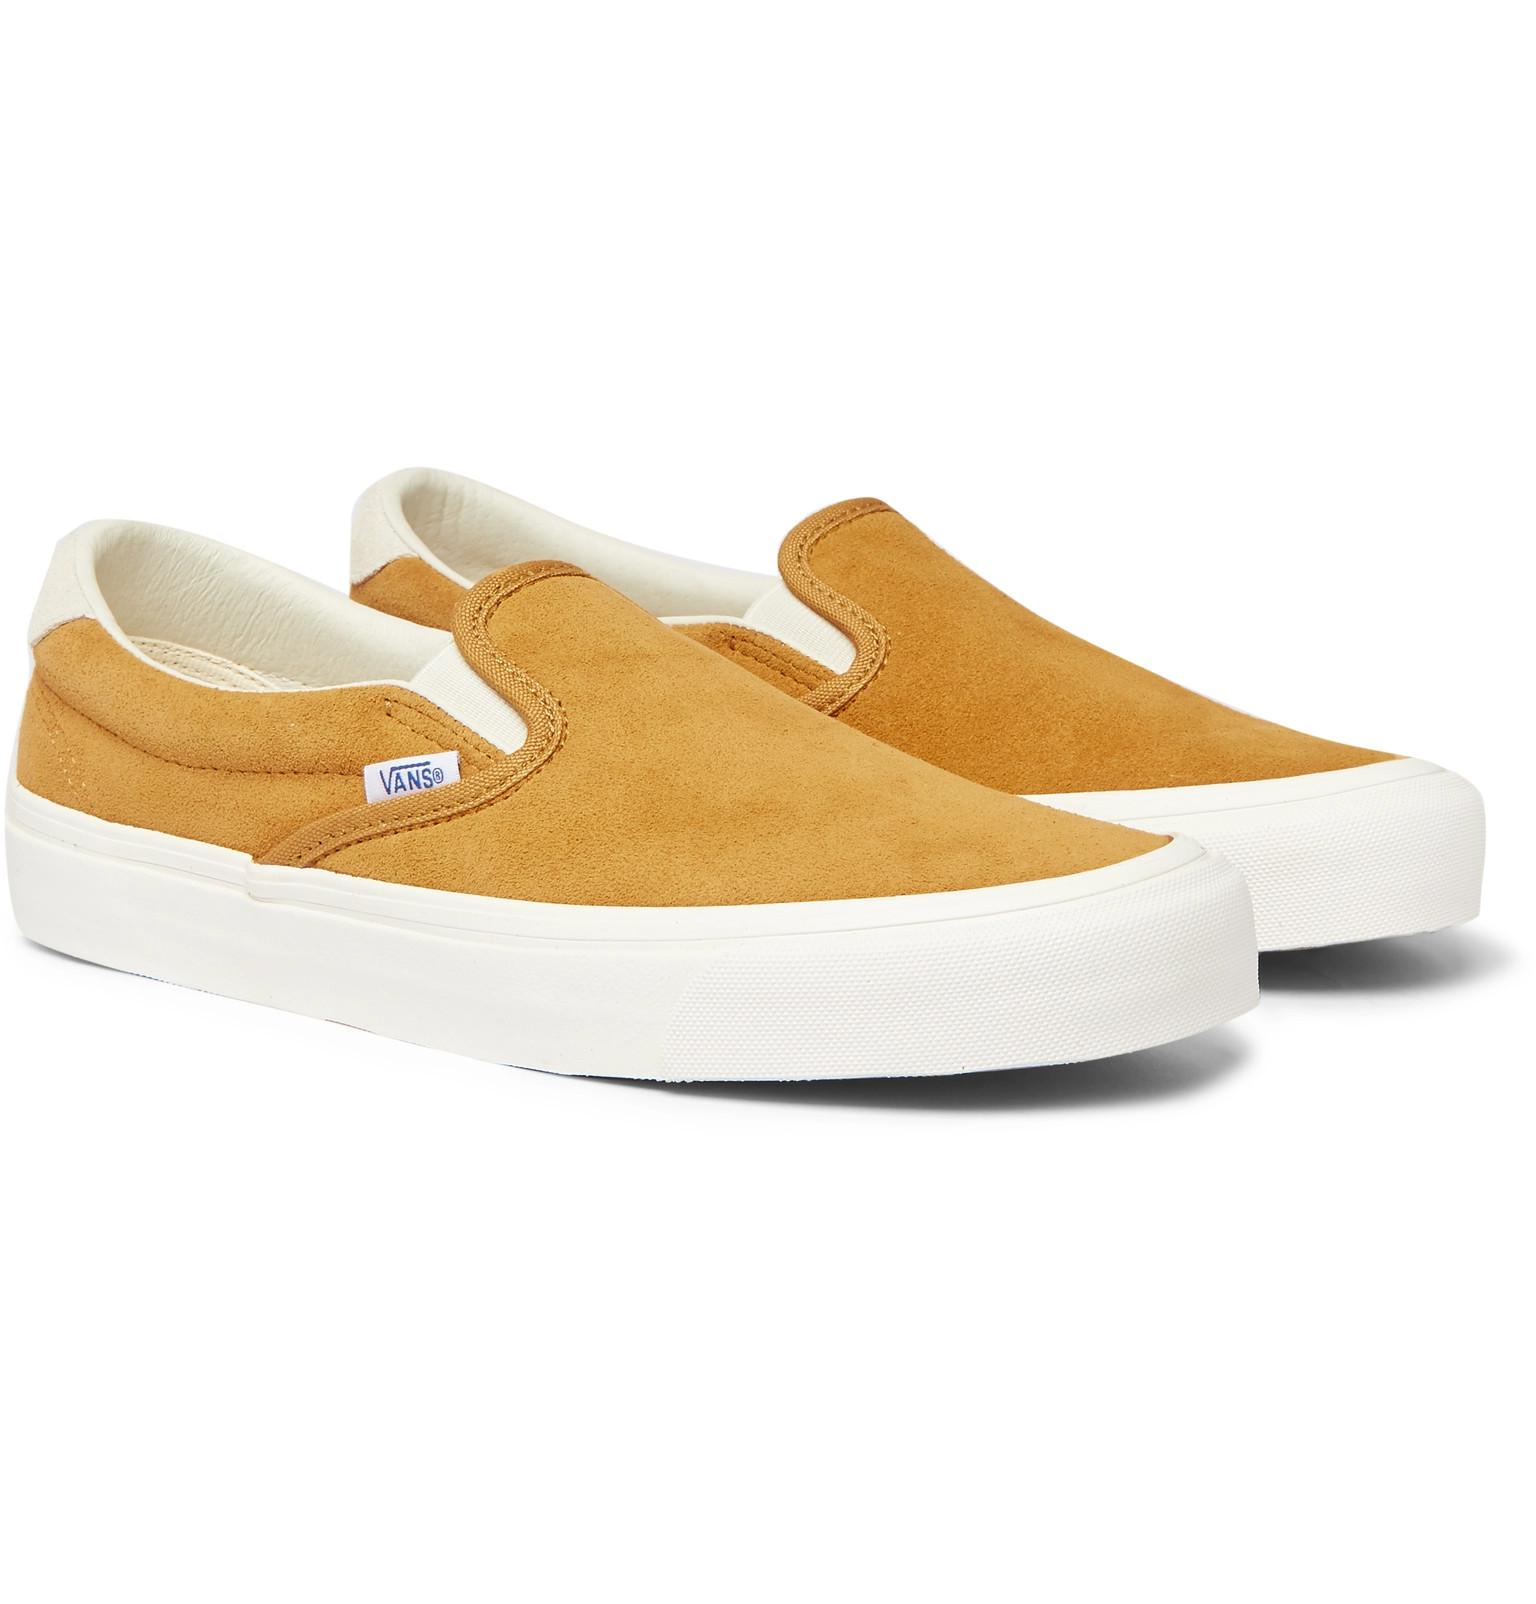 4bcdfd92eed Vans Og 59 Lx Suede Slip-on Sneakers in Yellow for Men - Lyst